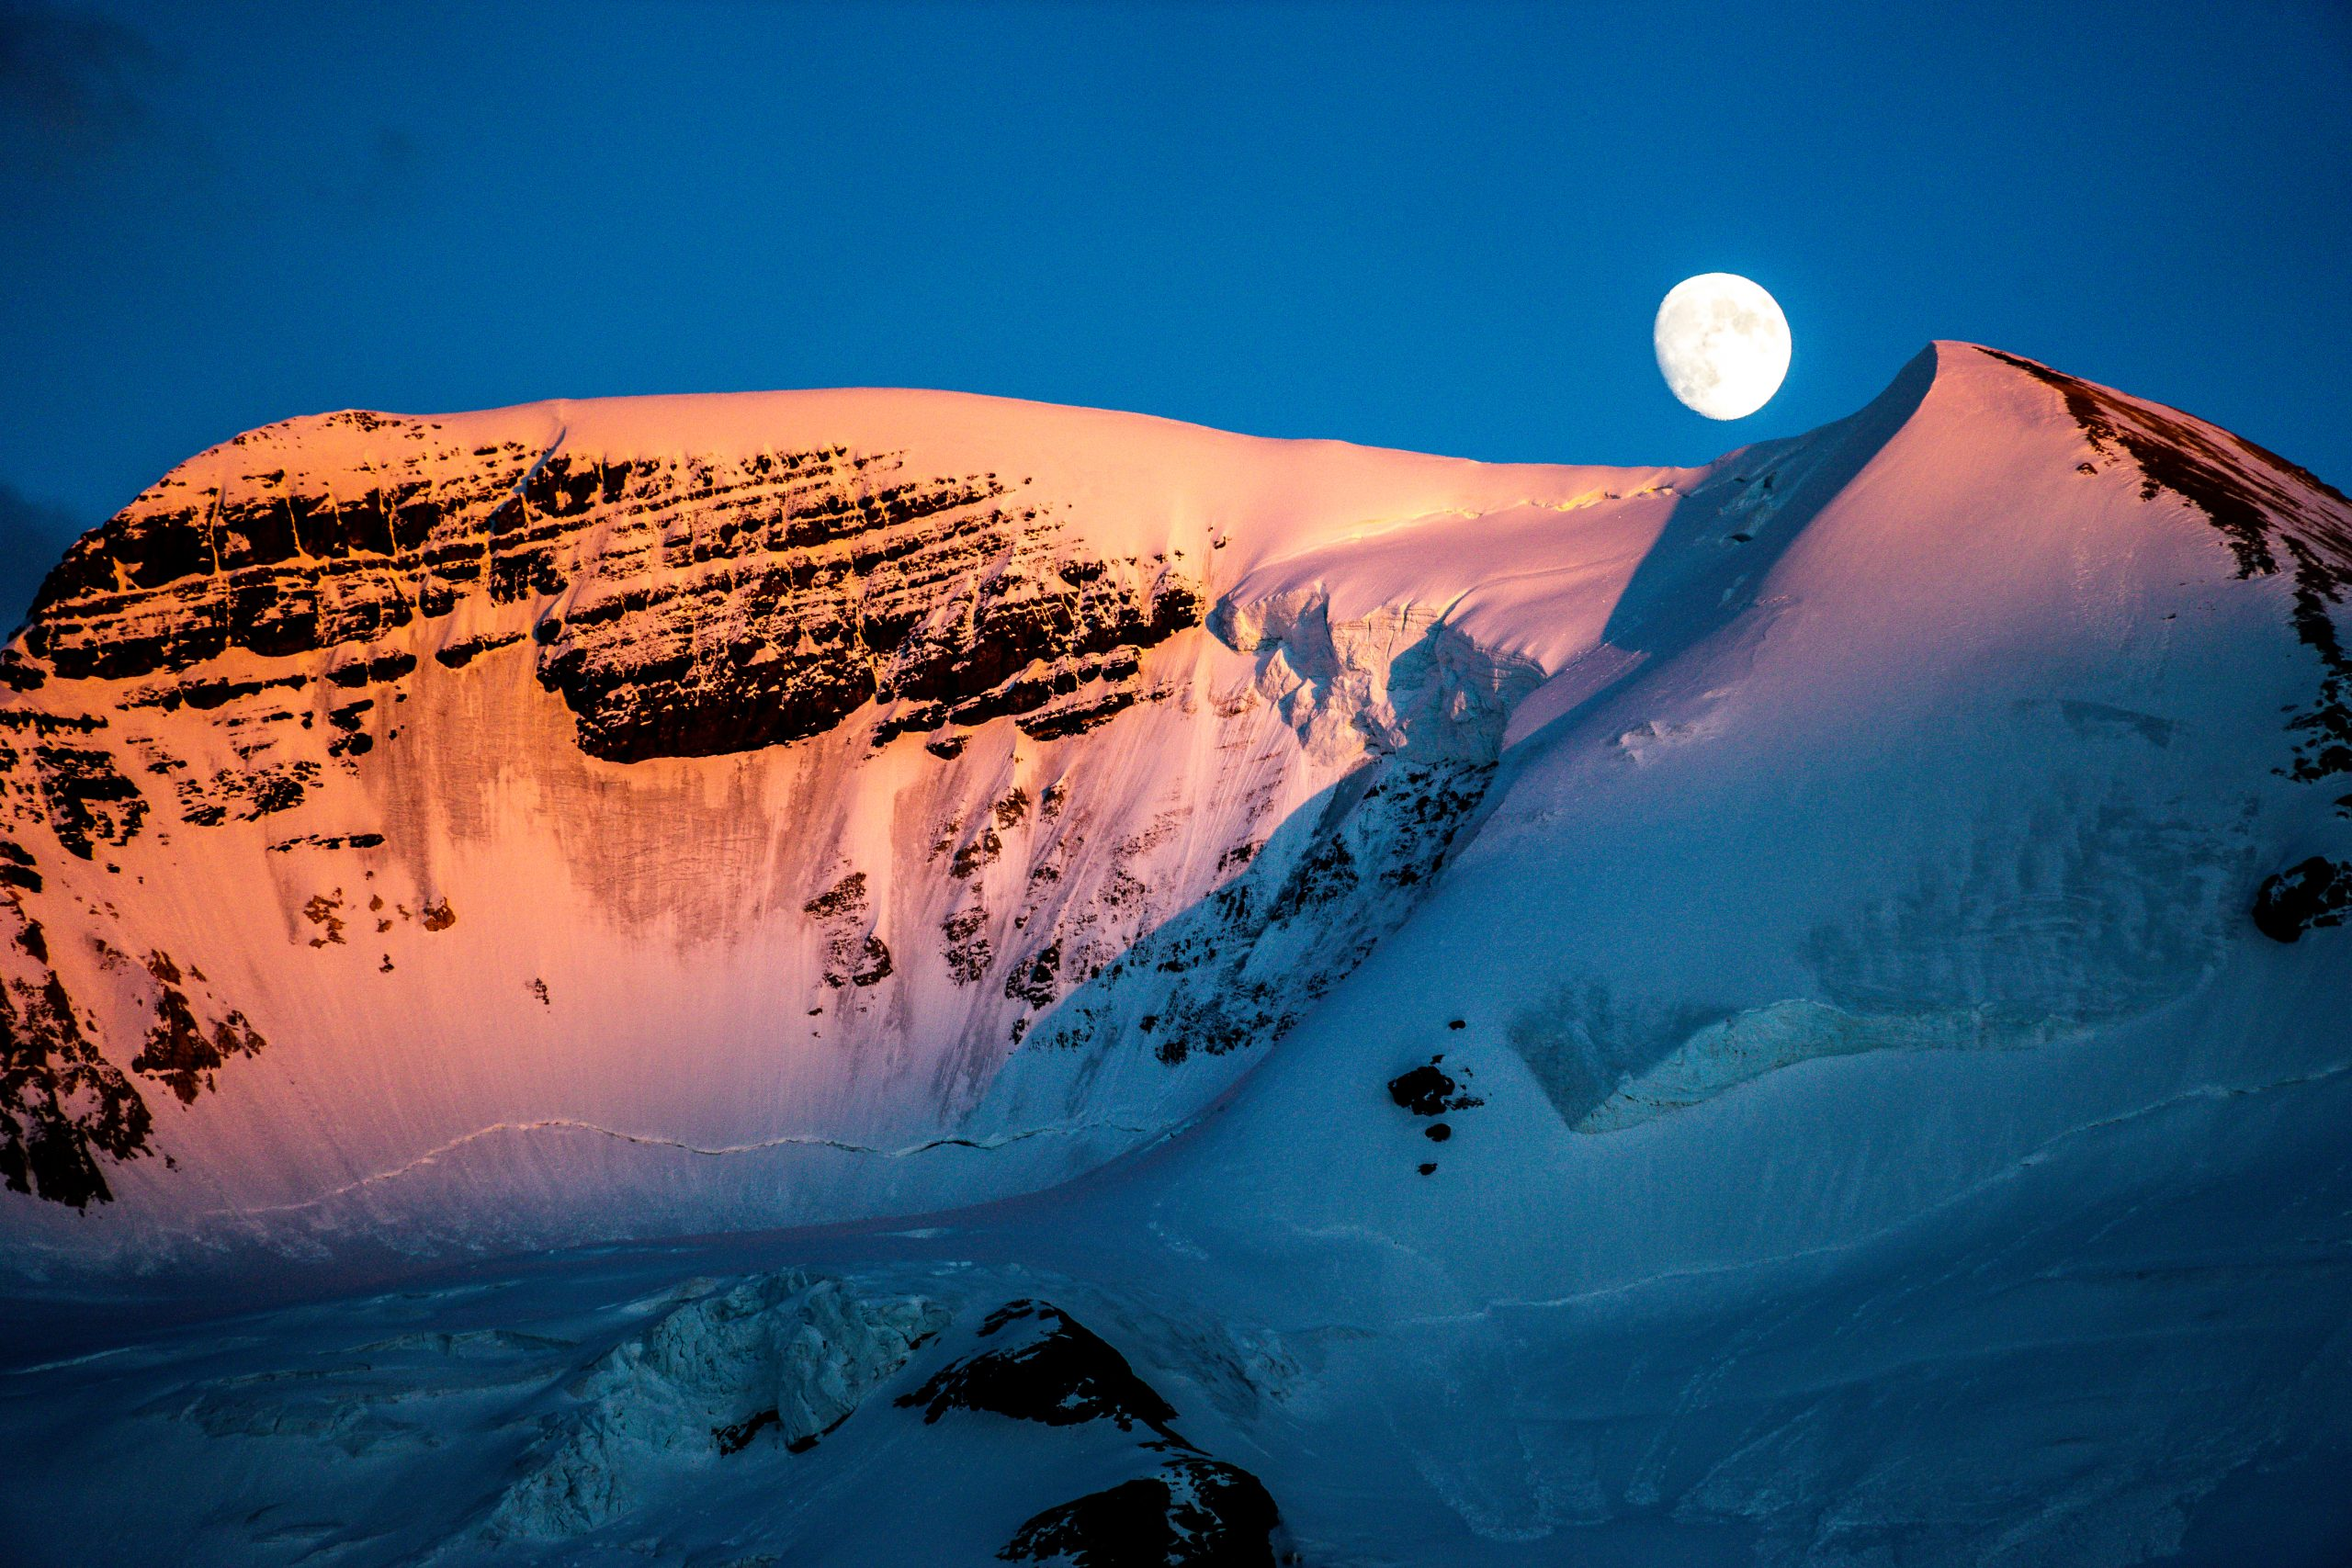 Moon over the Columbia Icefield, Athabasca Glacier, Jasper National Park, Alberta